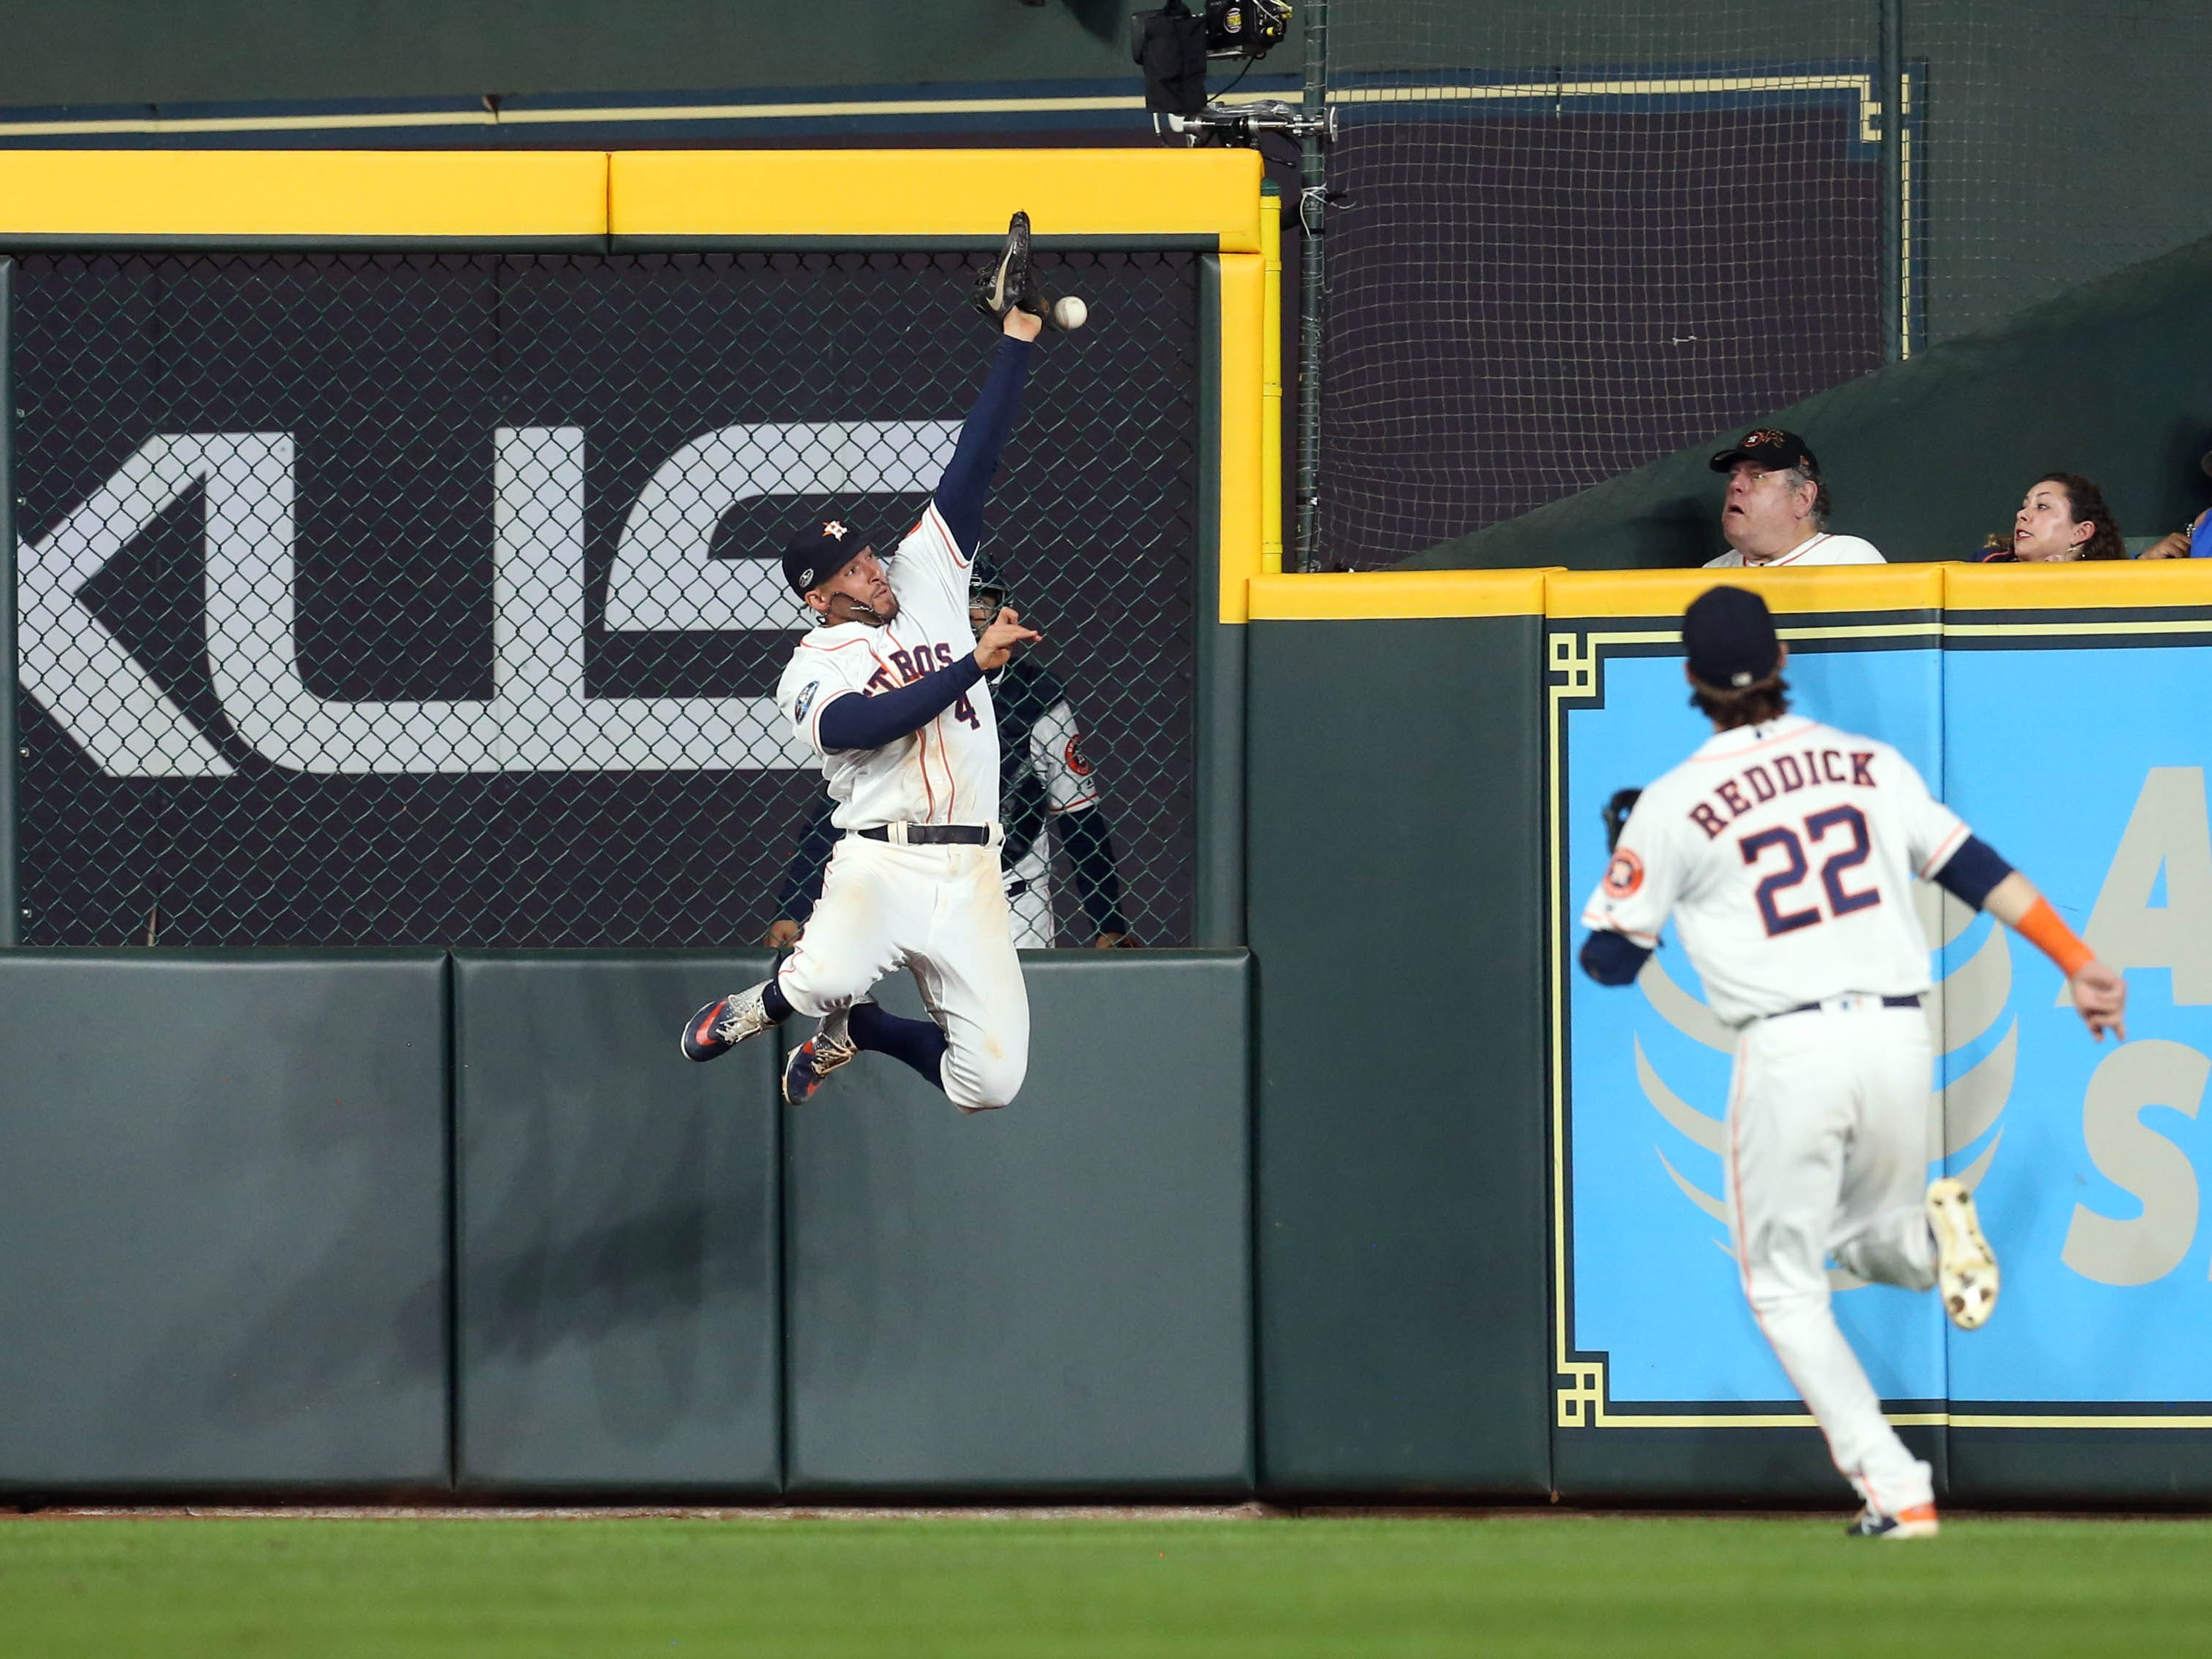 ALCS Game 4: A ball hit by Christian Vazquez is just out of reach for Astros center fielder George Springer in the fourth inning.